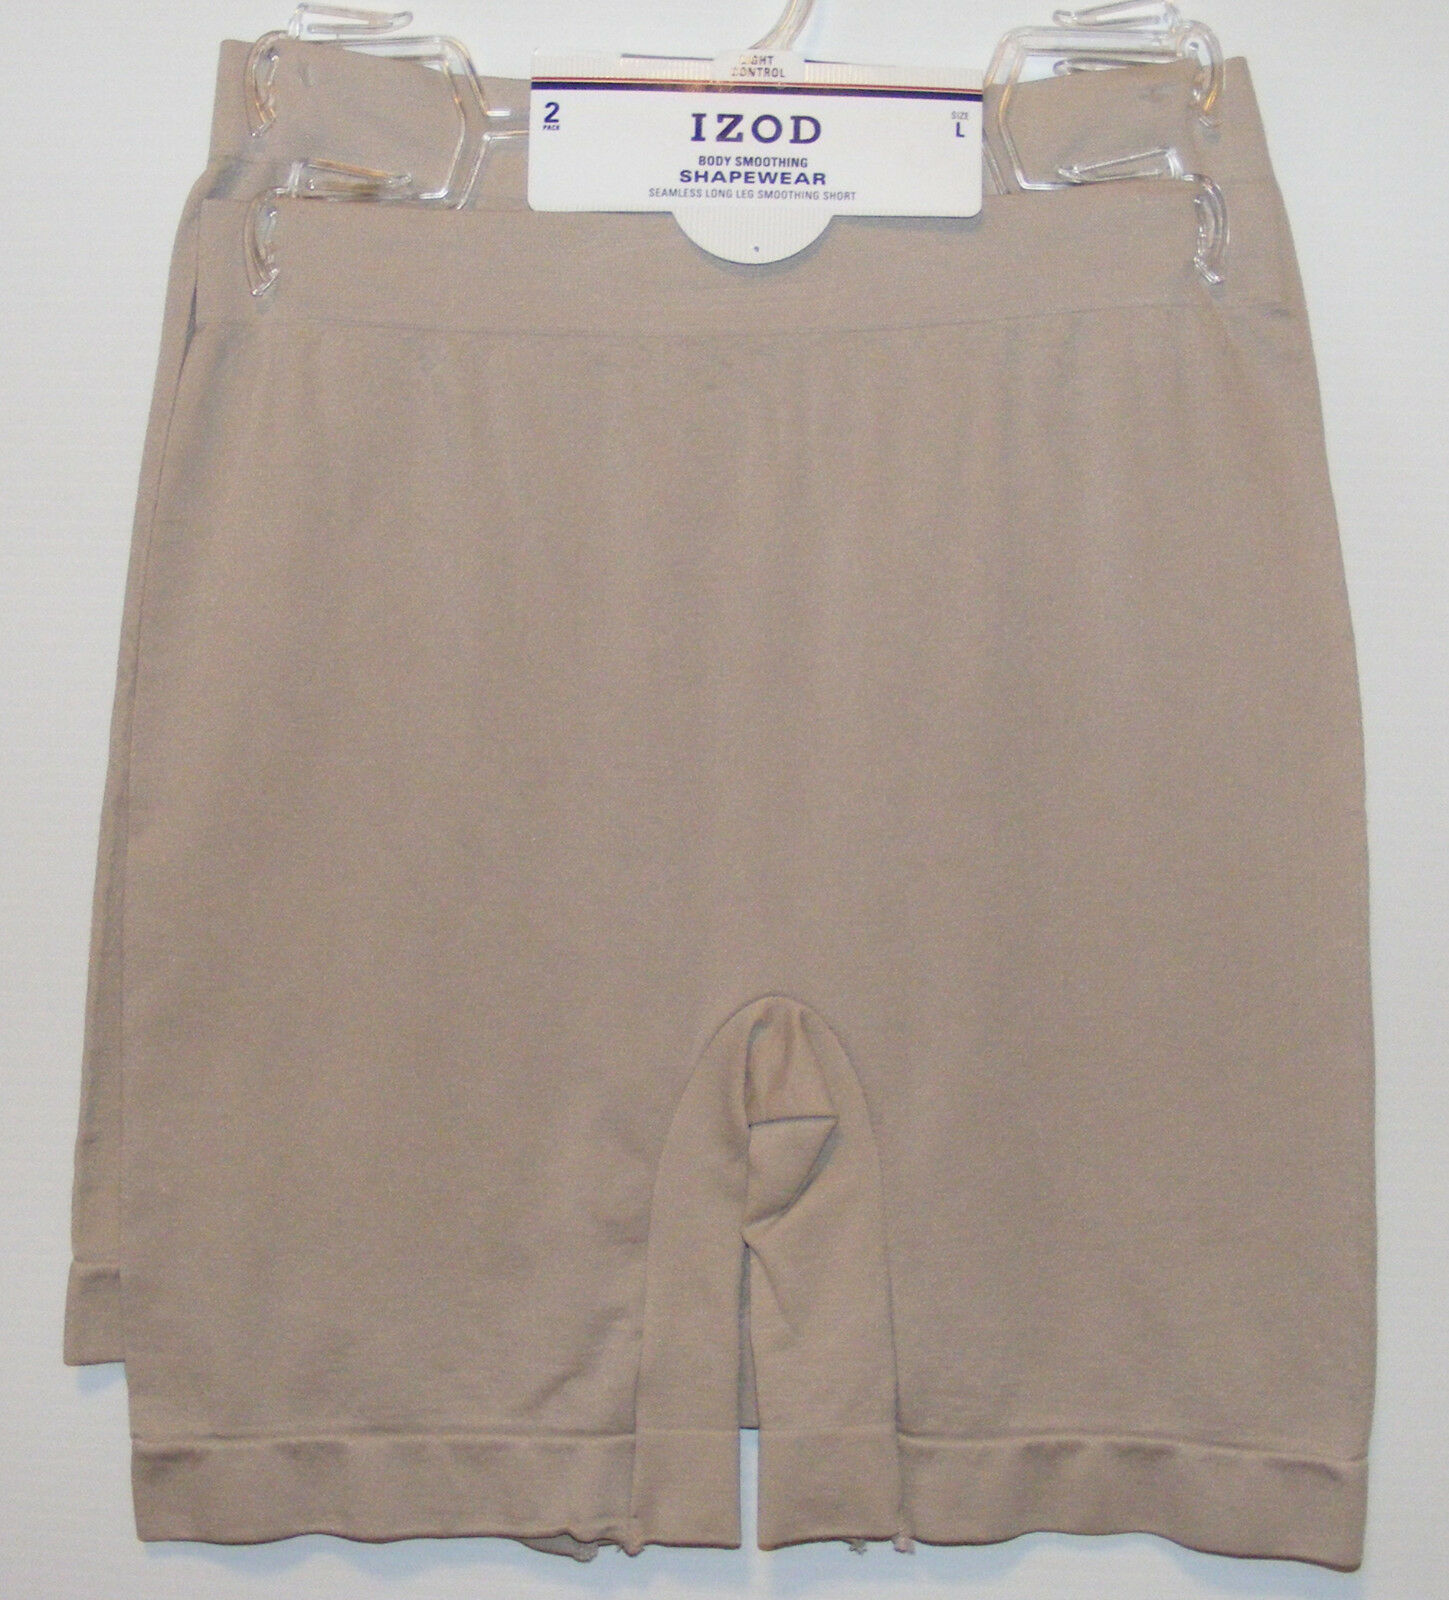 80bed536d2 Izod 2 Pack Shorts Seamless Shapewear Smoothing Long Leg Light Control Nude